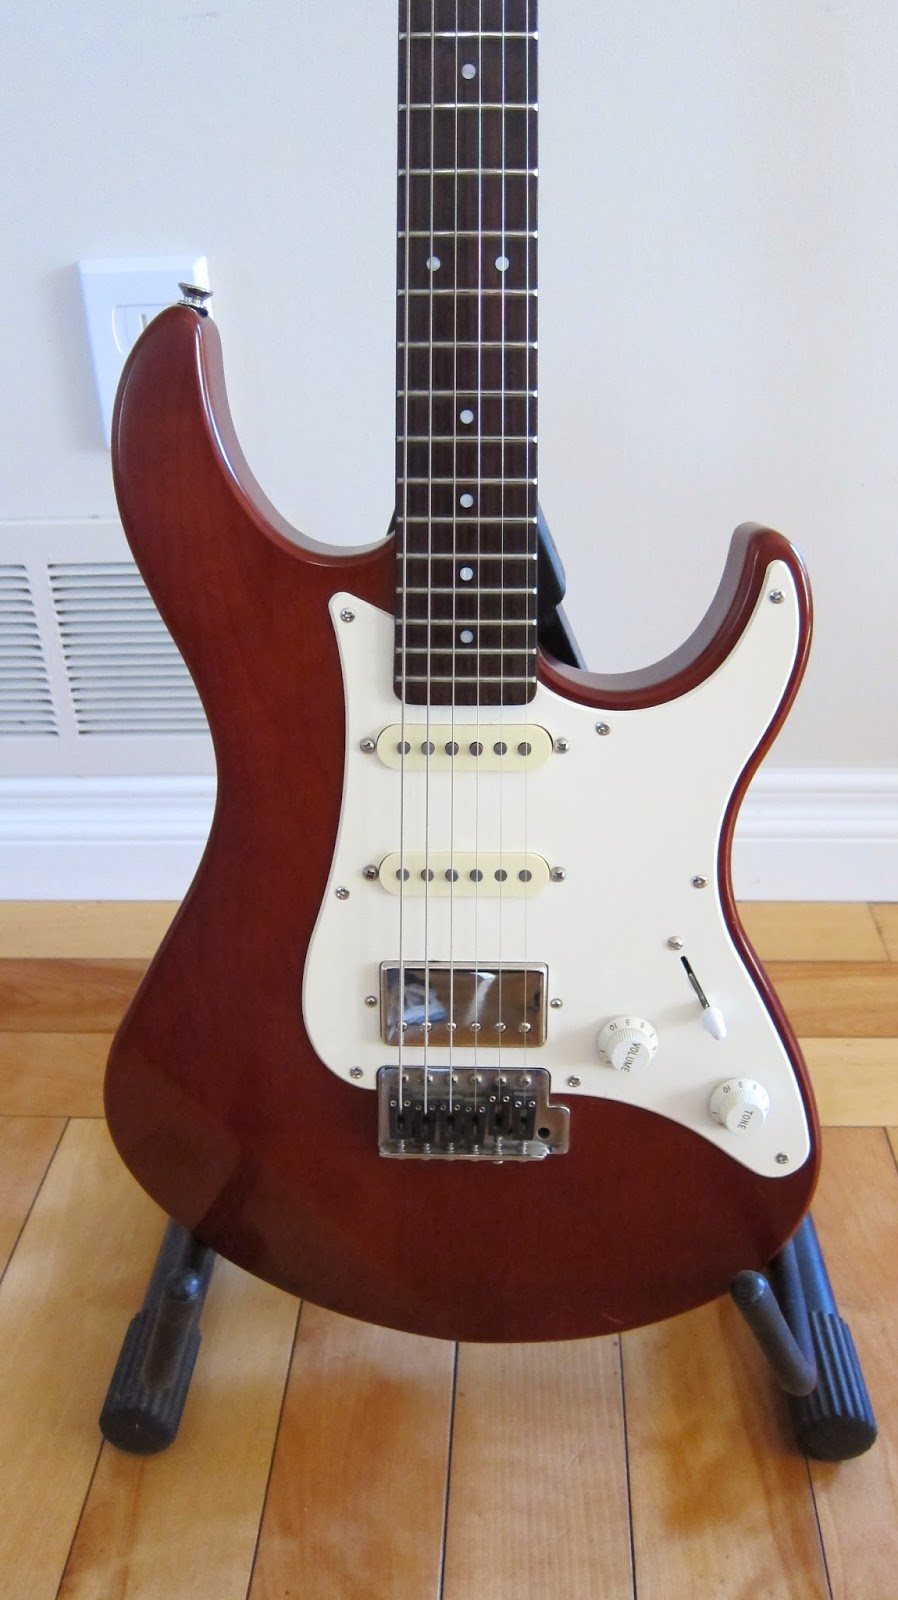 Pacifica 112 Vs Squier Standard Stratocaster Guitarcher Fender Not That Theyre Different Colors I Mean They Are But The Point Has A Gloss Finish While Yamaha Is Satin